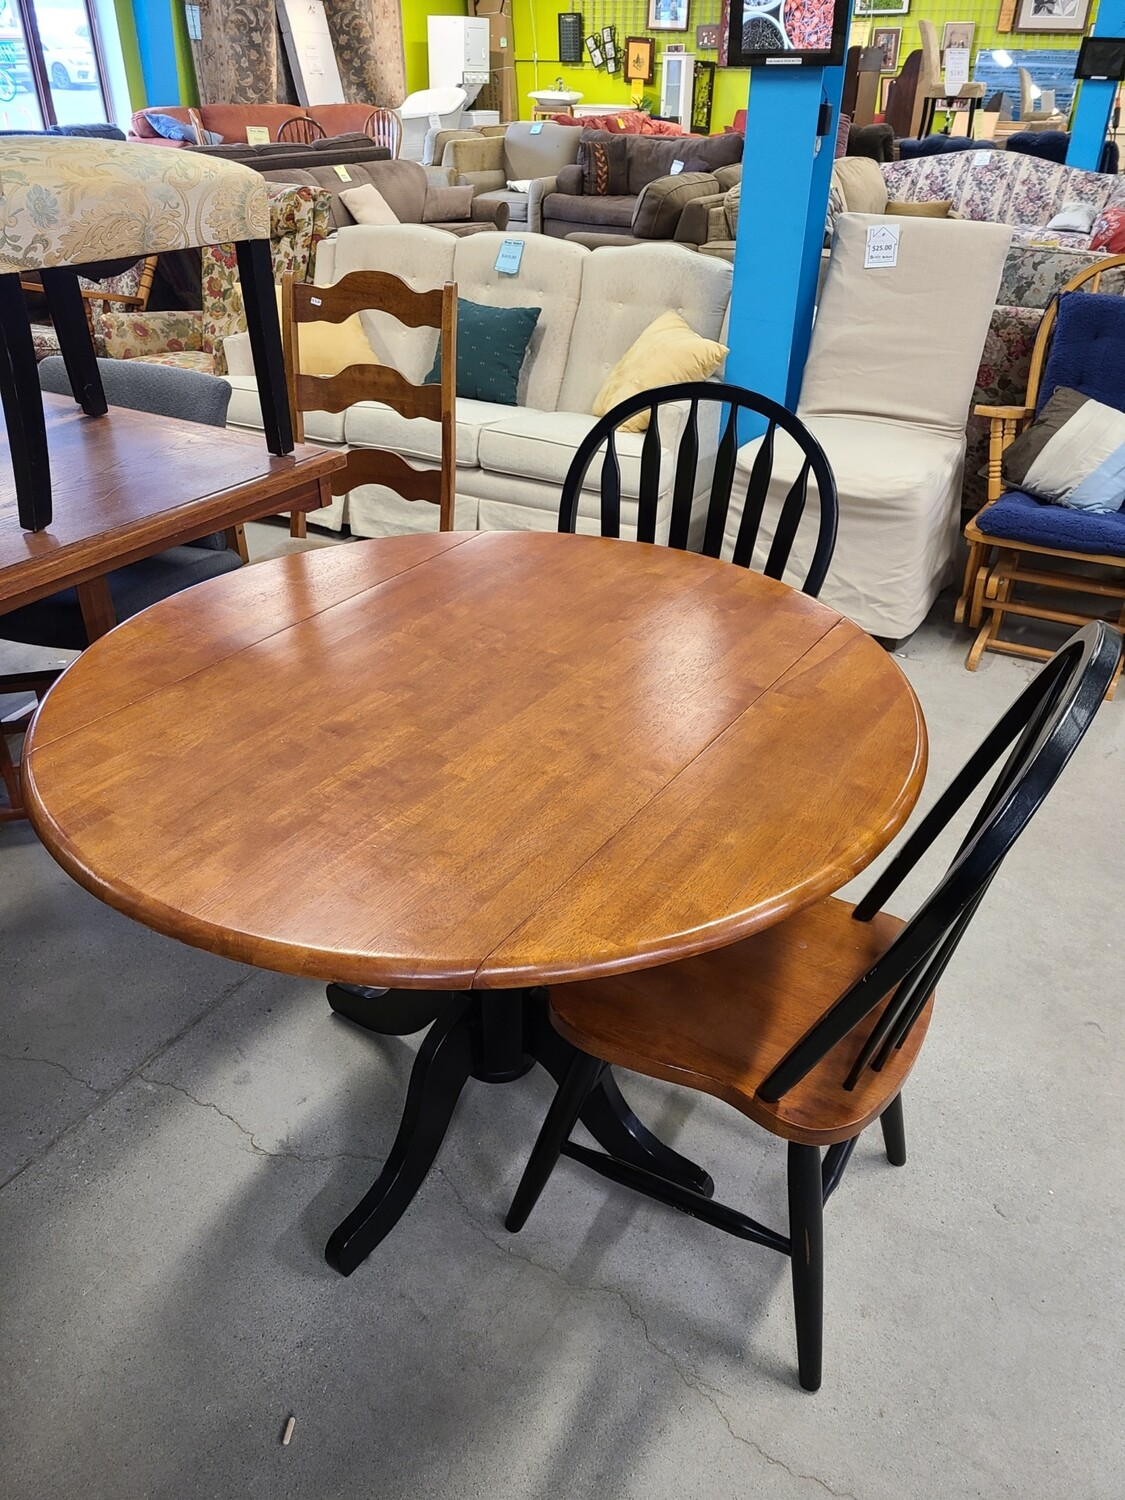 Drop Leaf Table w/ 2 Chairs